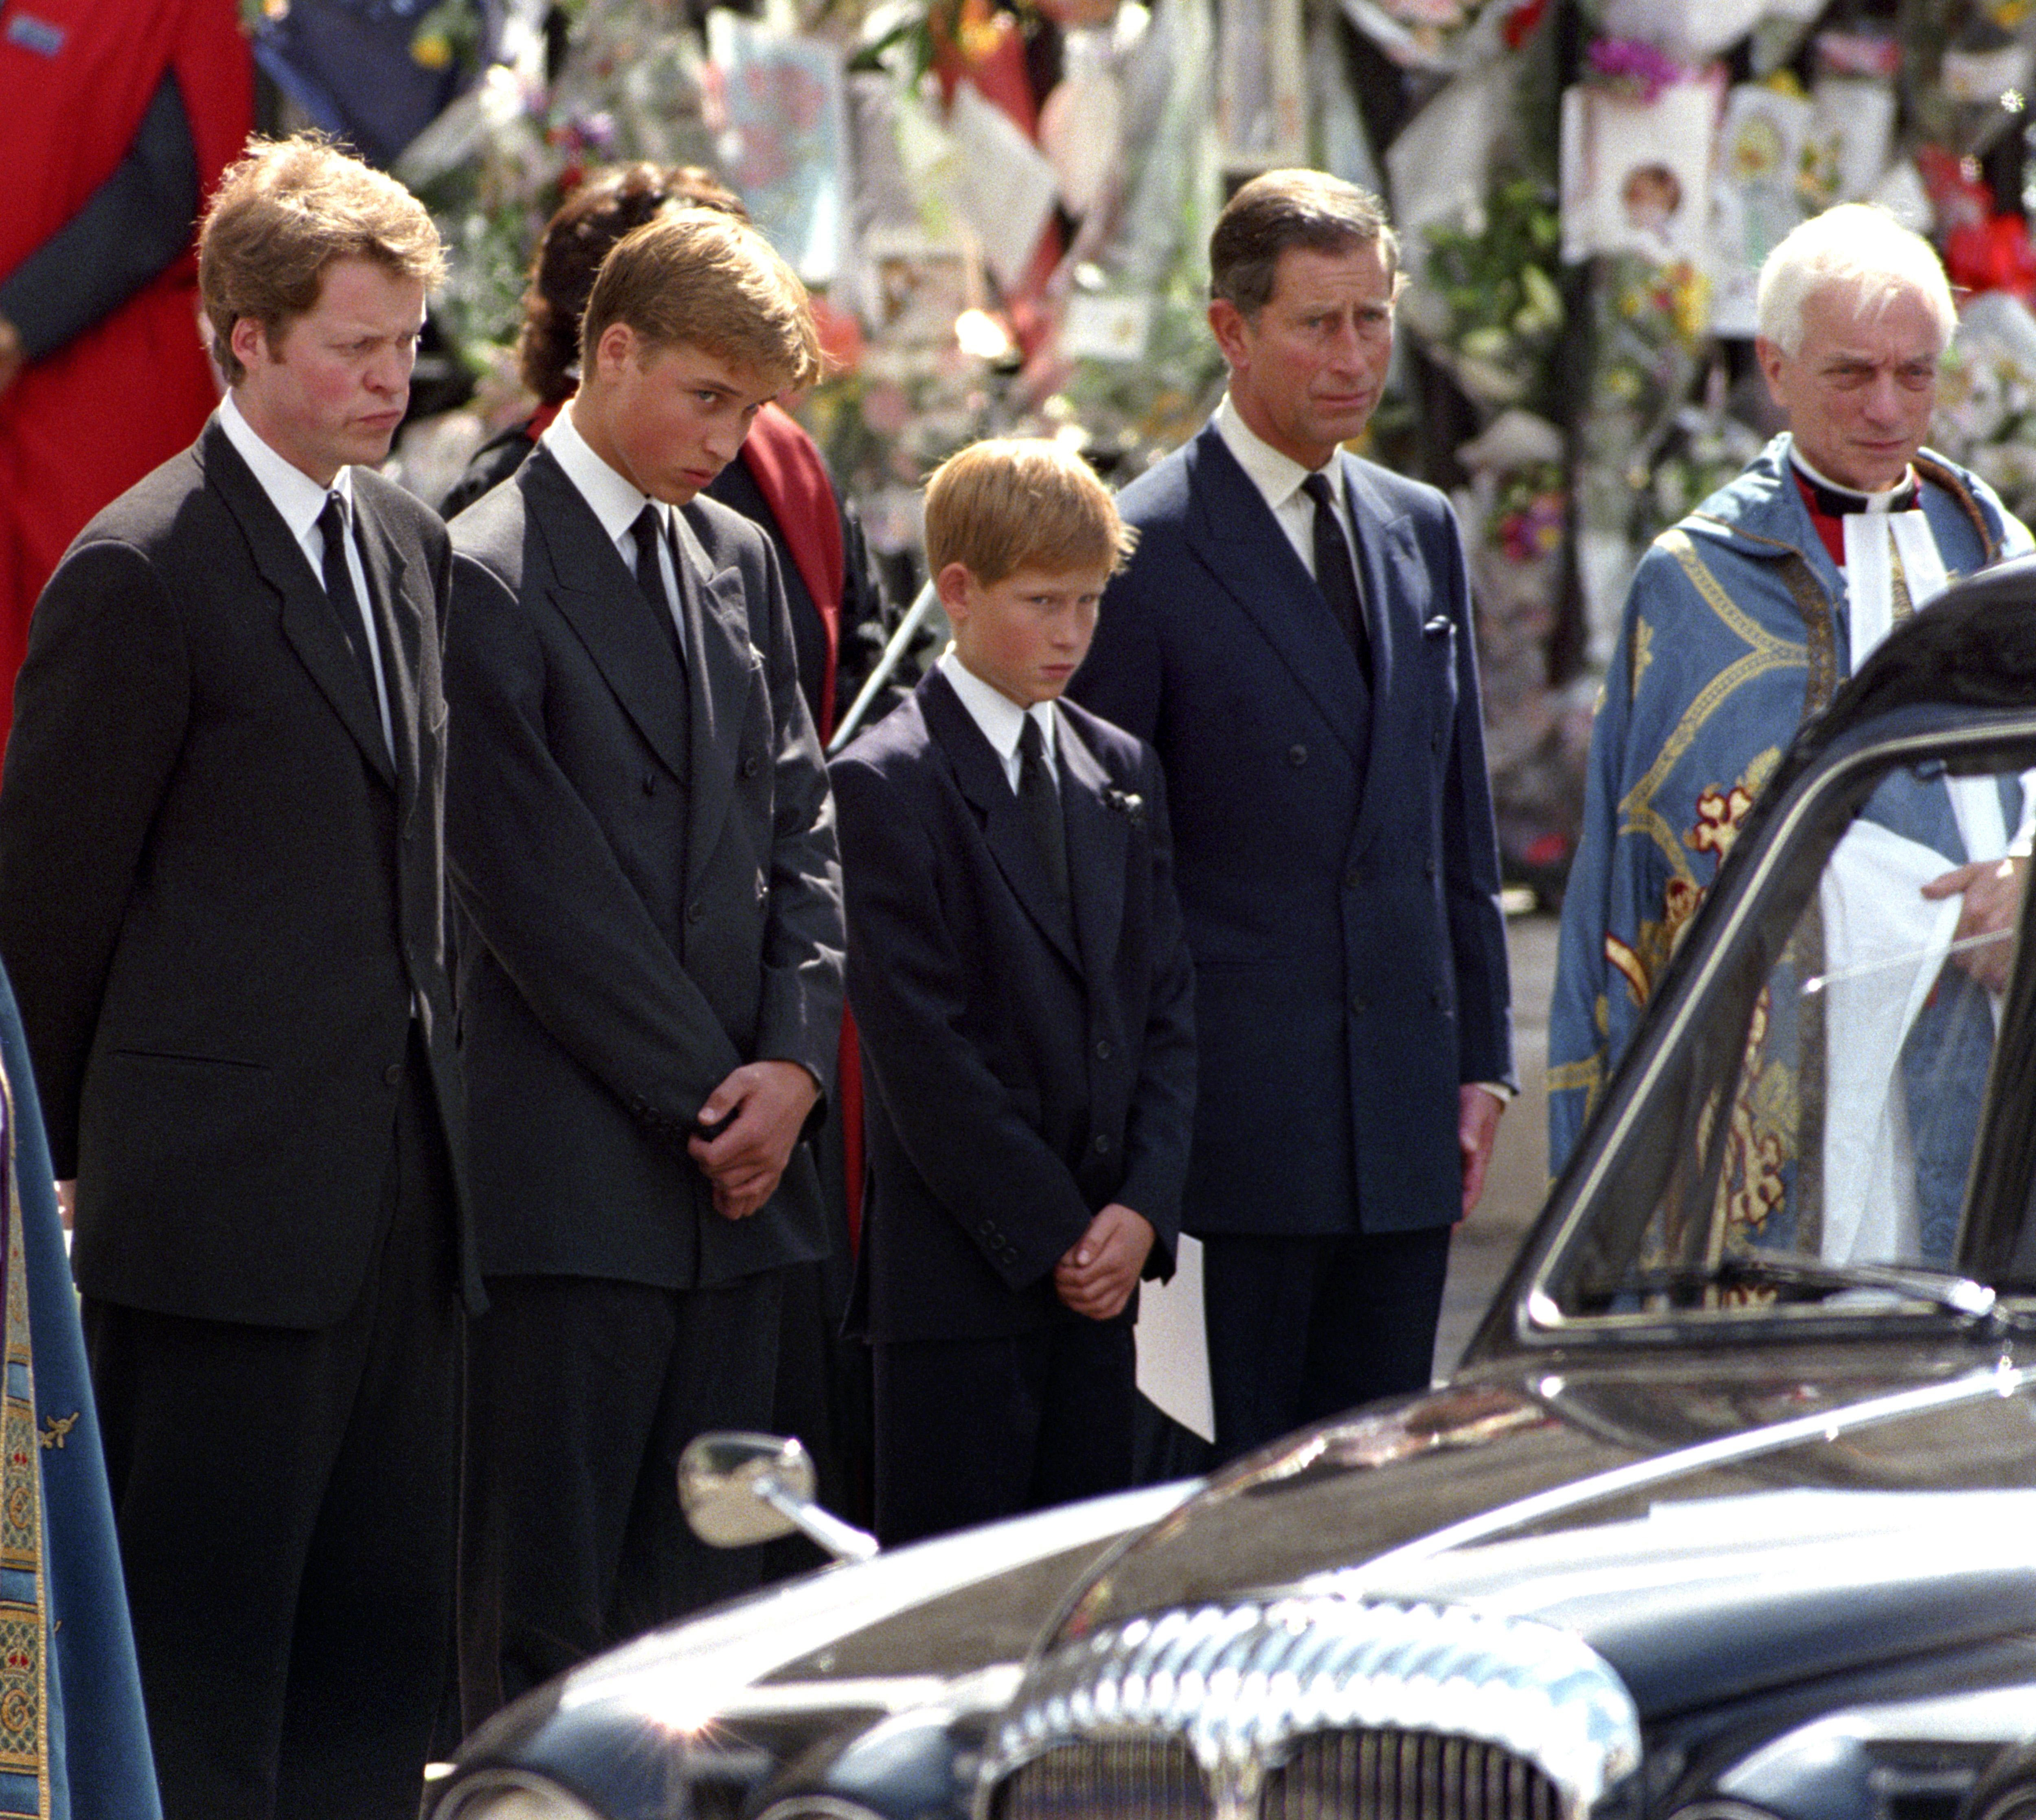 The Earl Spencer, Prince William, Prince Harry and the Prince of Wales, wait as the hearse carrying the coffin of Diana, Princess of Wales, prepares to leave Westminster Abbey following her funeral on Sept. 6, 1997.